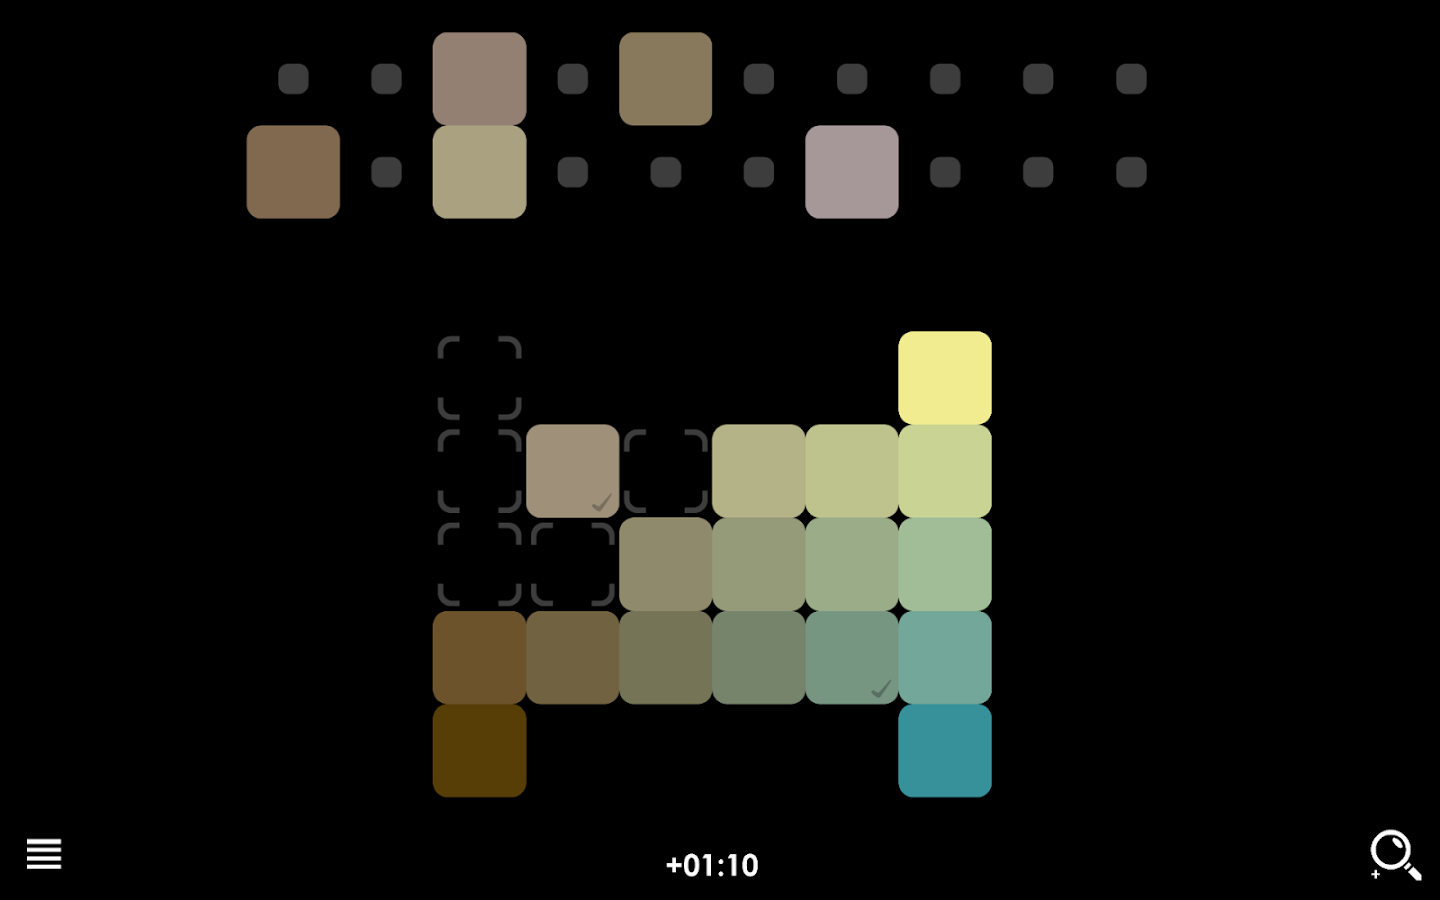 Game color theory - Blendoku 2 Screenshot